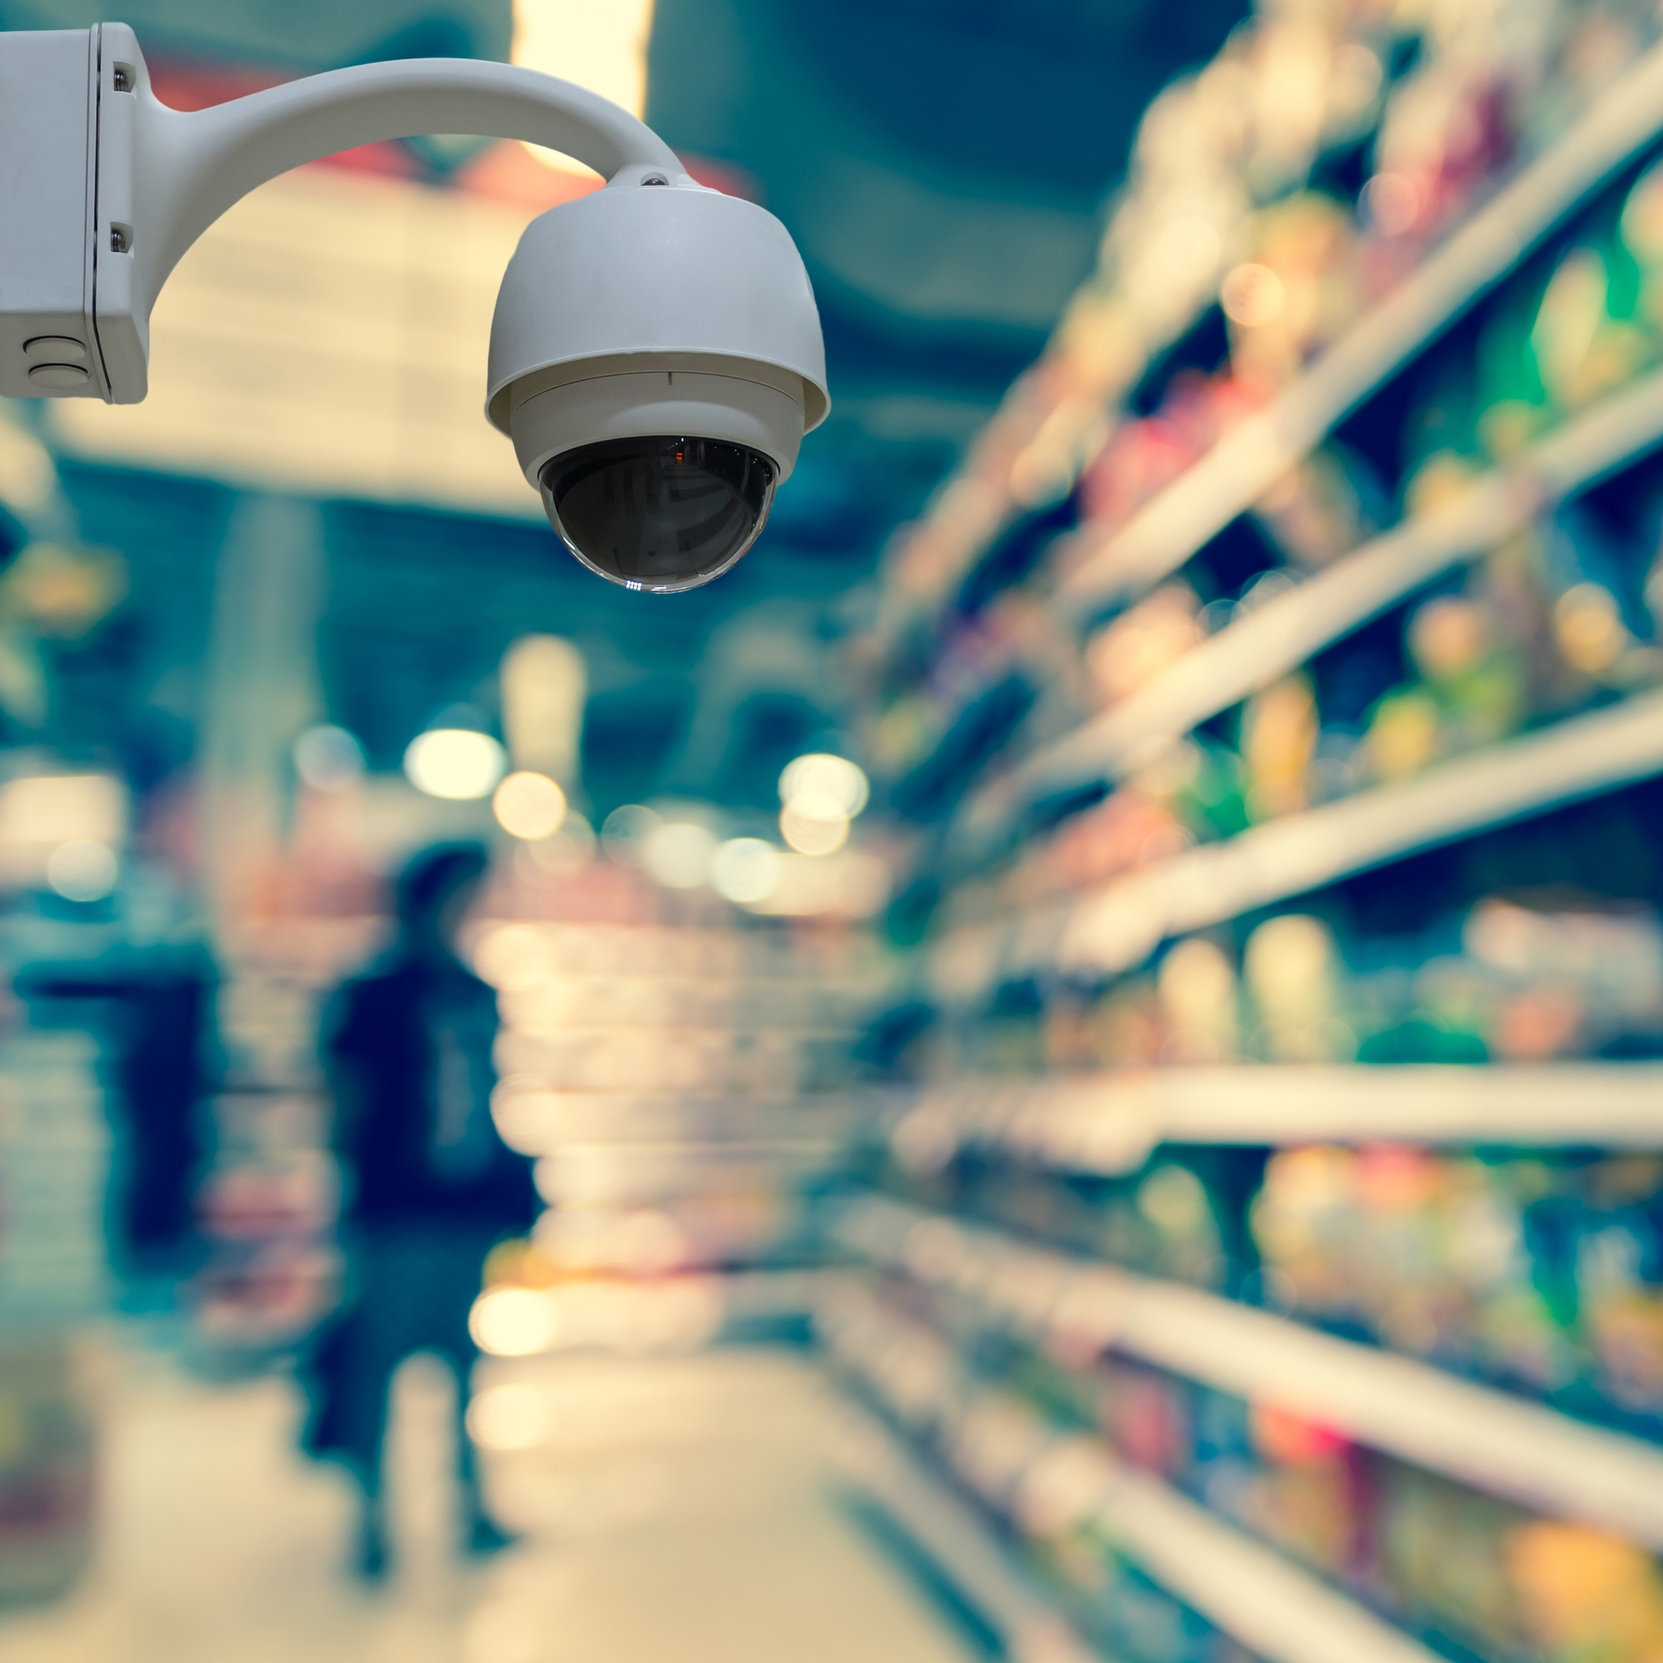 Retail Security -